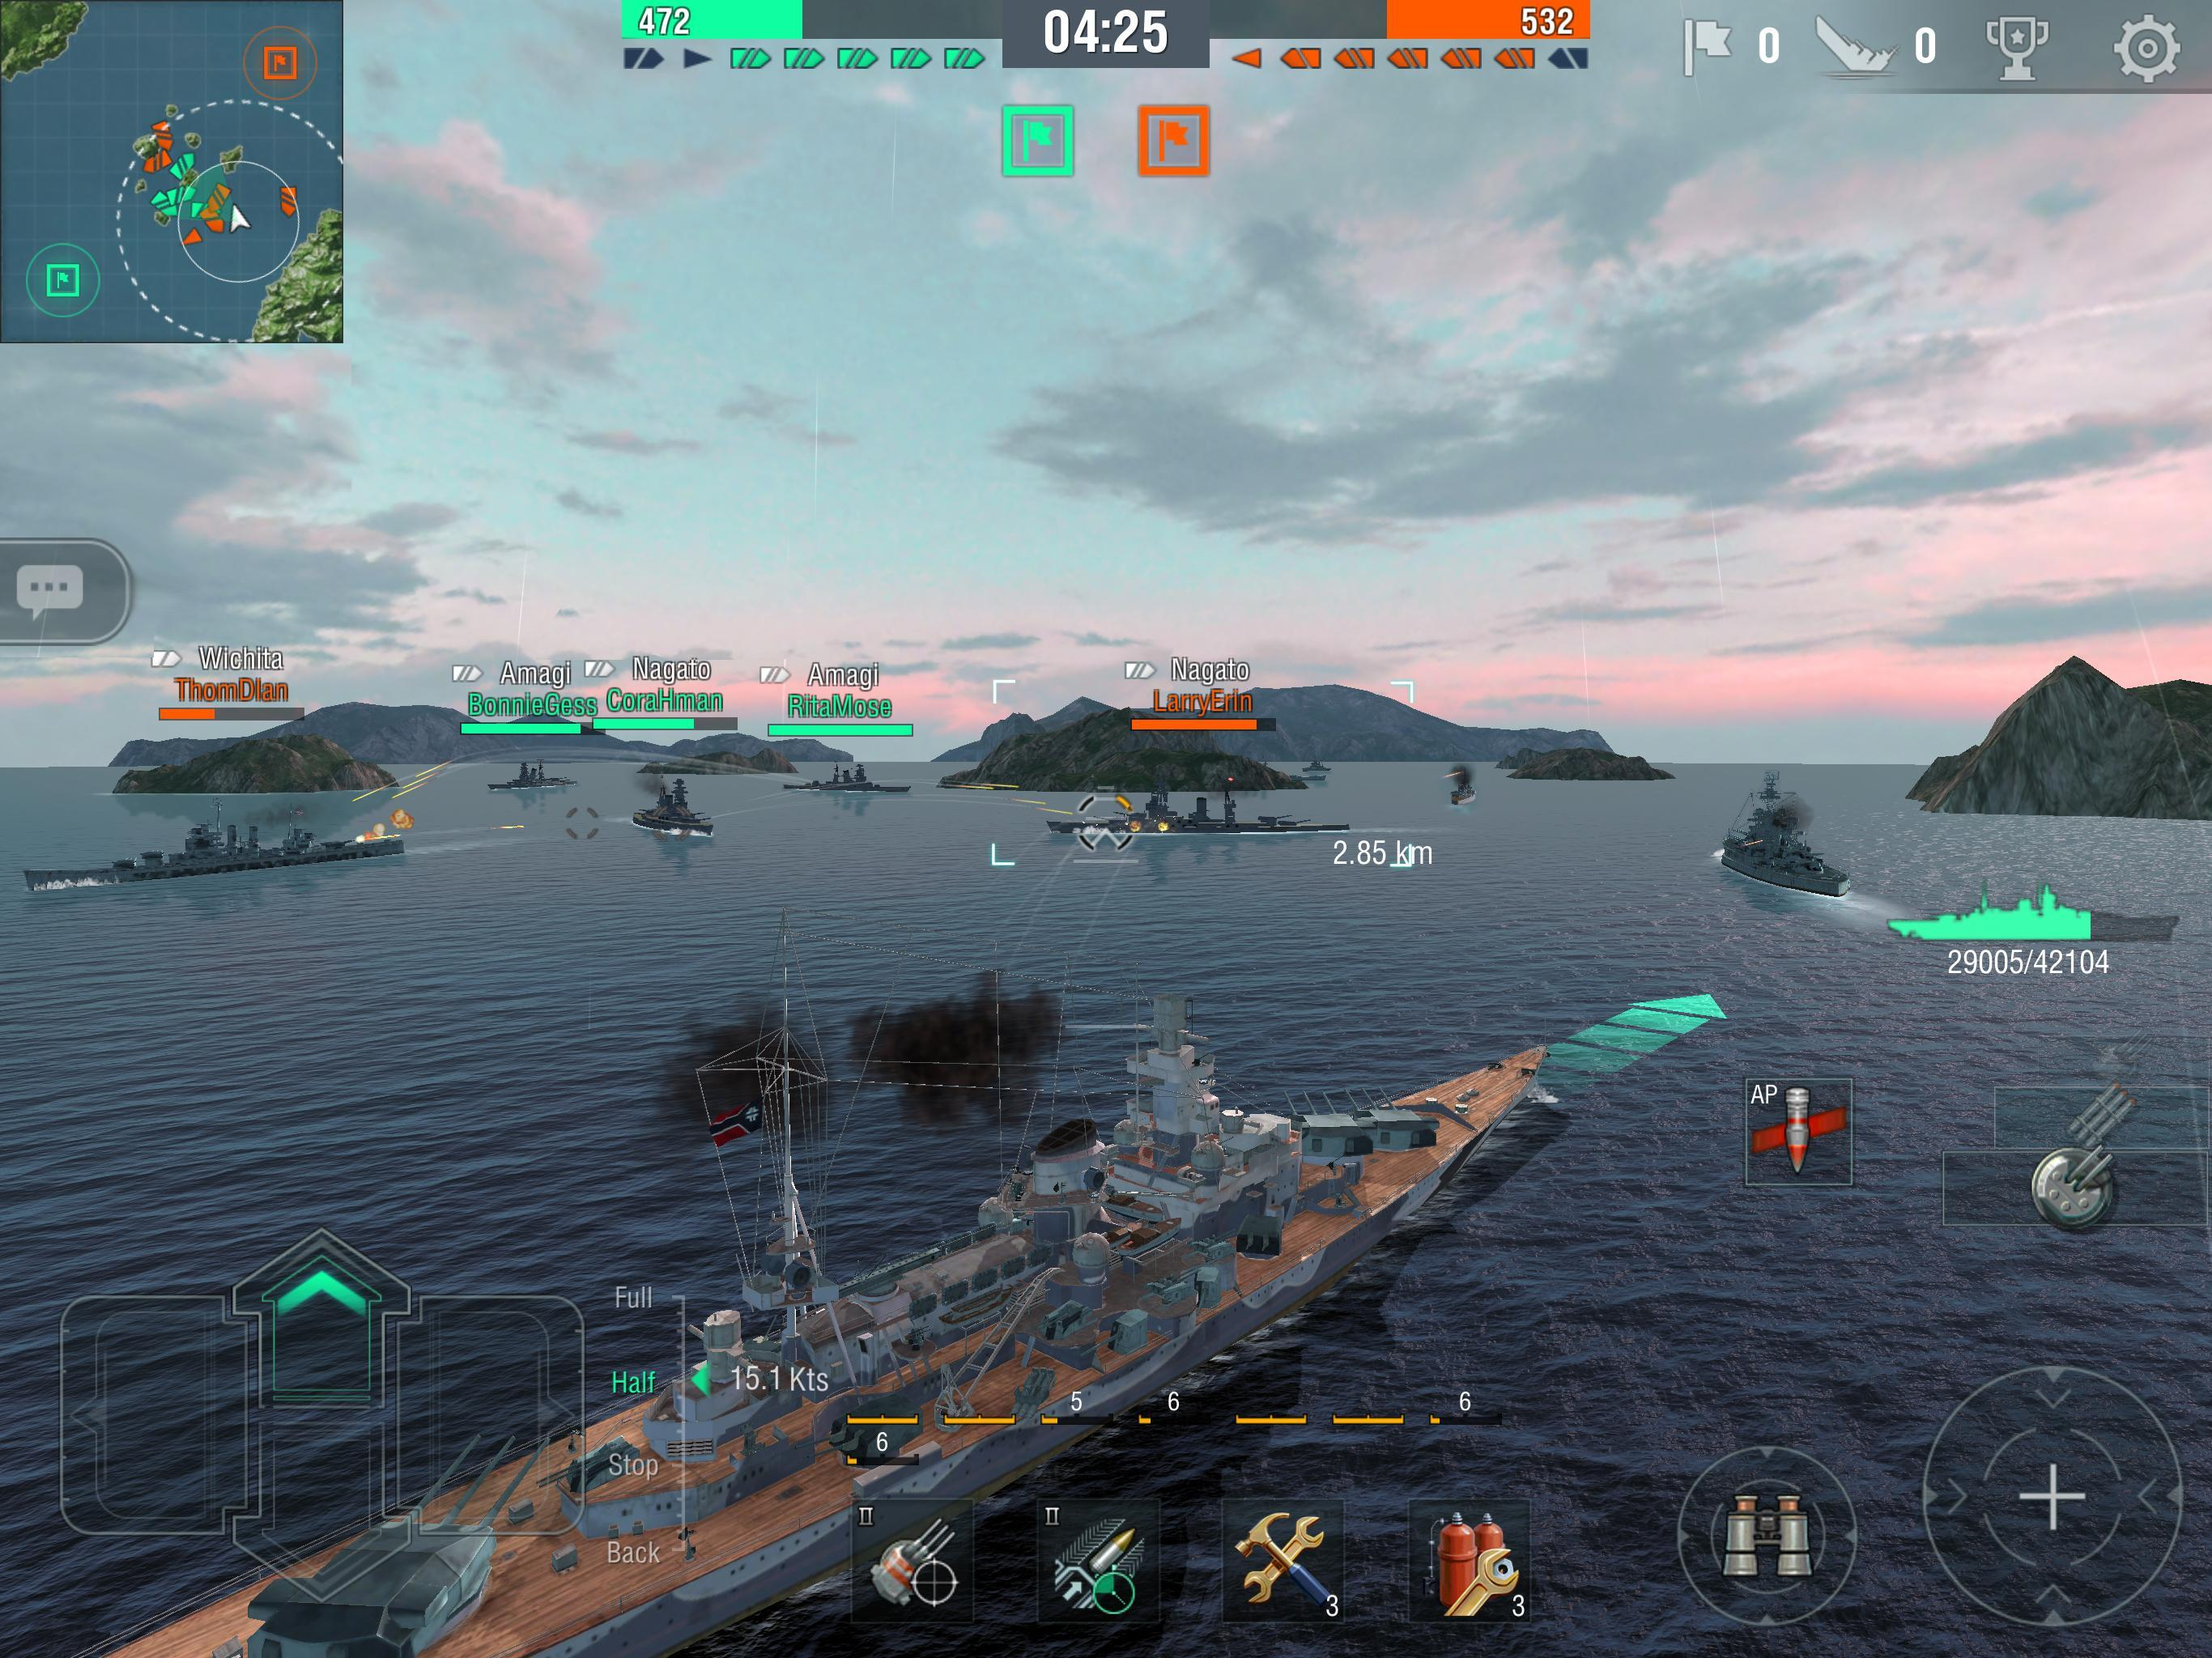 World Of Warships Blitz Gunship Action War Game For Android Apk Download